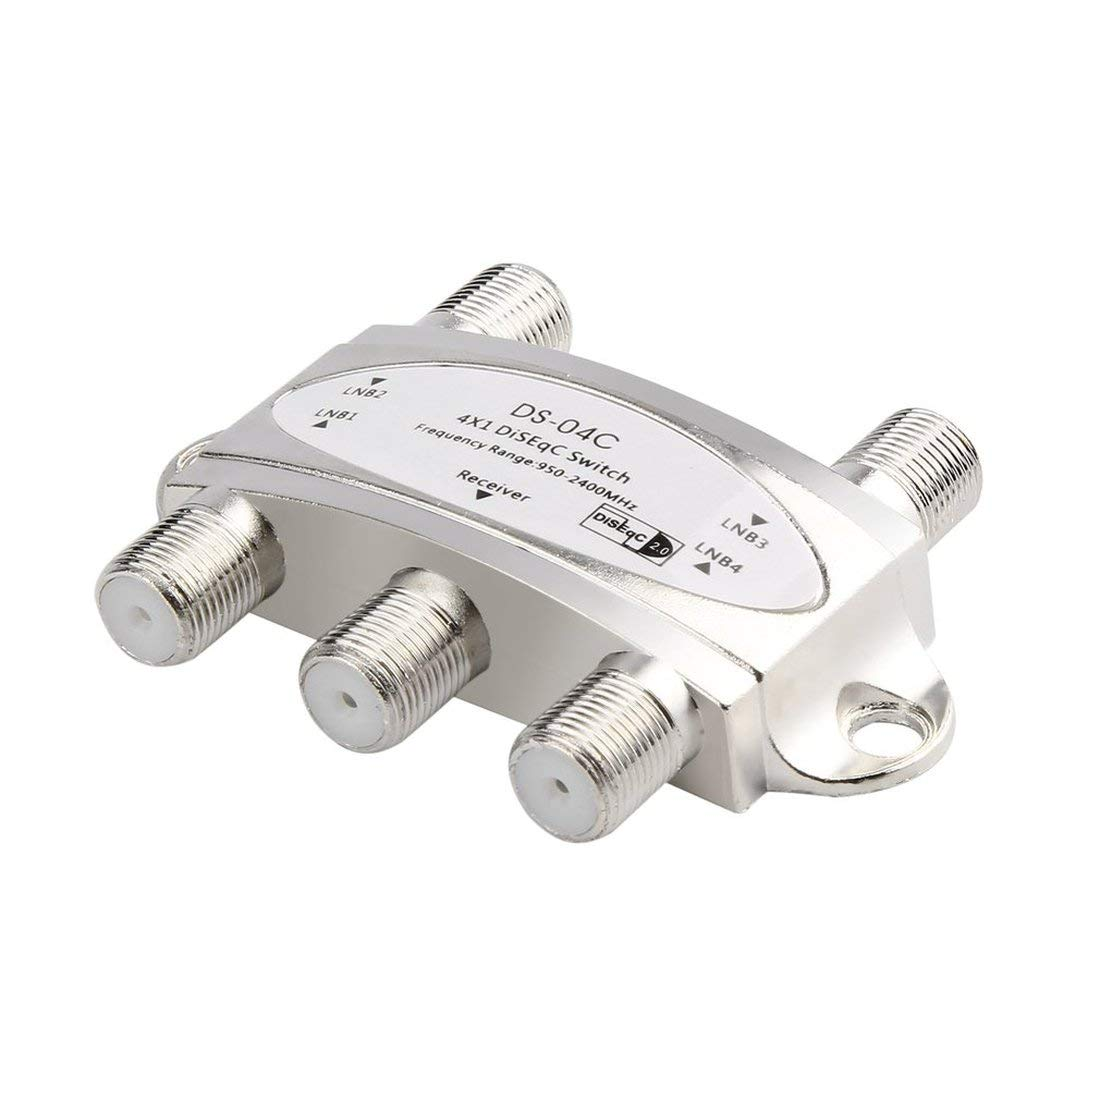 4 in 1 4 x 1 DiSEqc 4-Way Wideband Switch DS-04C High Isolation Connect 4 Satellite Dishes 4 LNB Satellite Receiver Formulaone